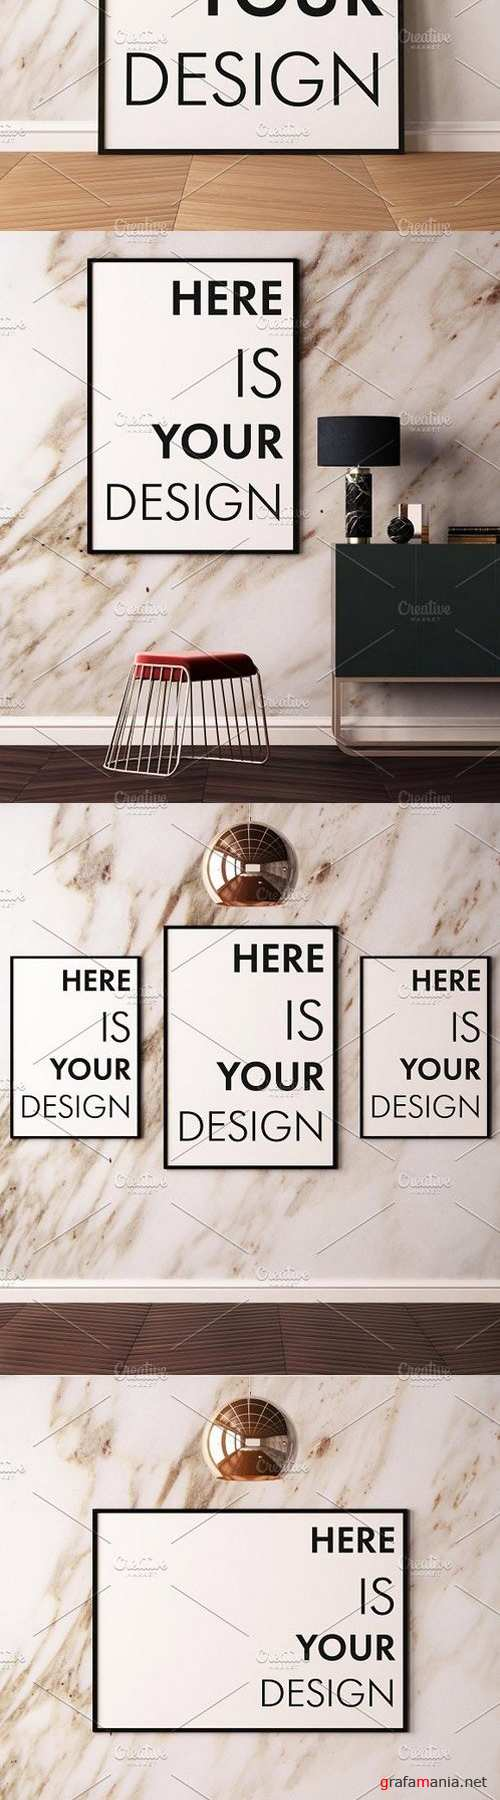 Mockup posters on a marble wall 1518244